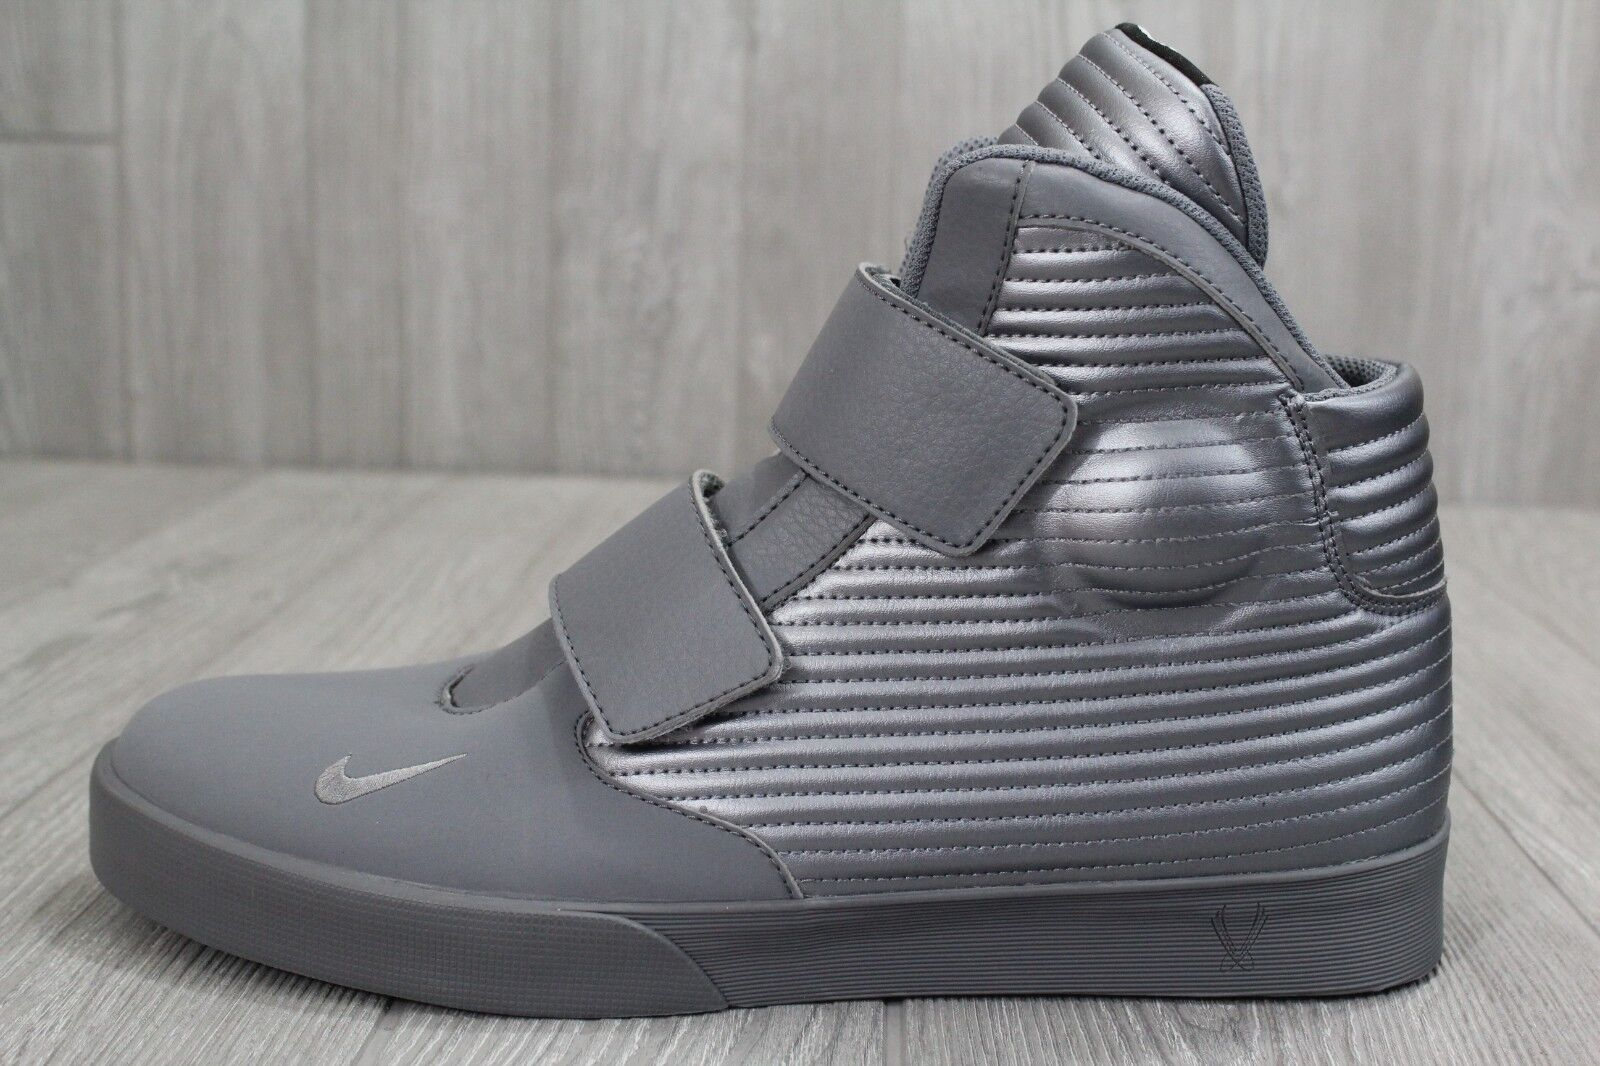 25 New Nike Flystepper 2K3 PRM Premium Grey shoes 644576 098 Men's Size 11.5